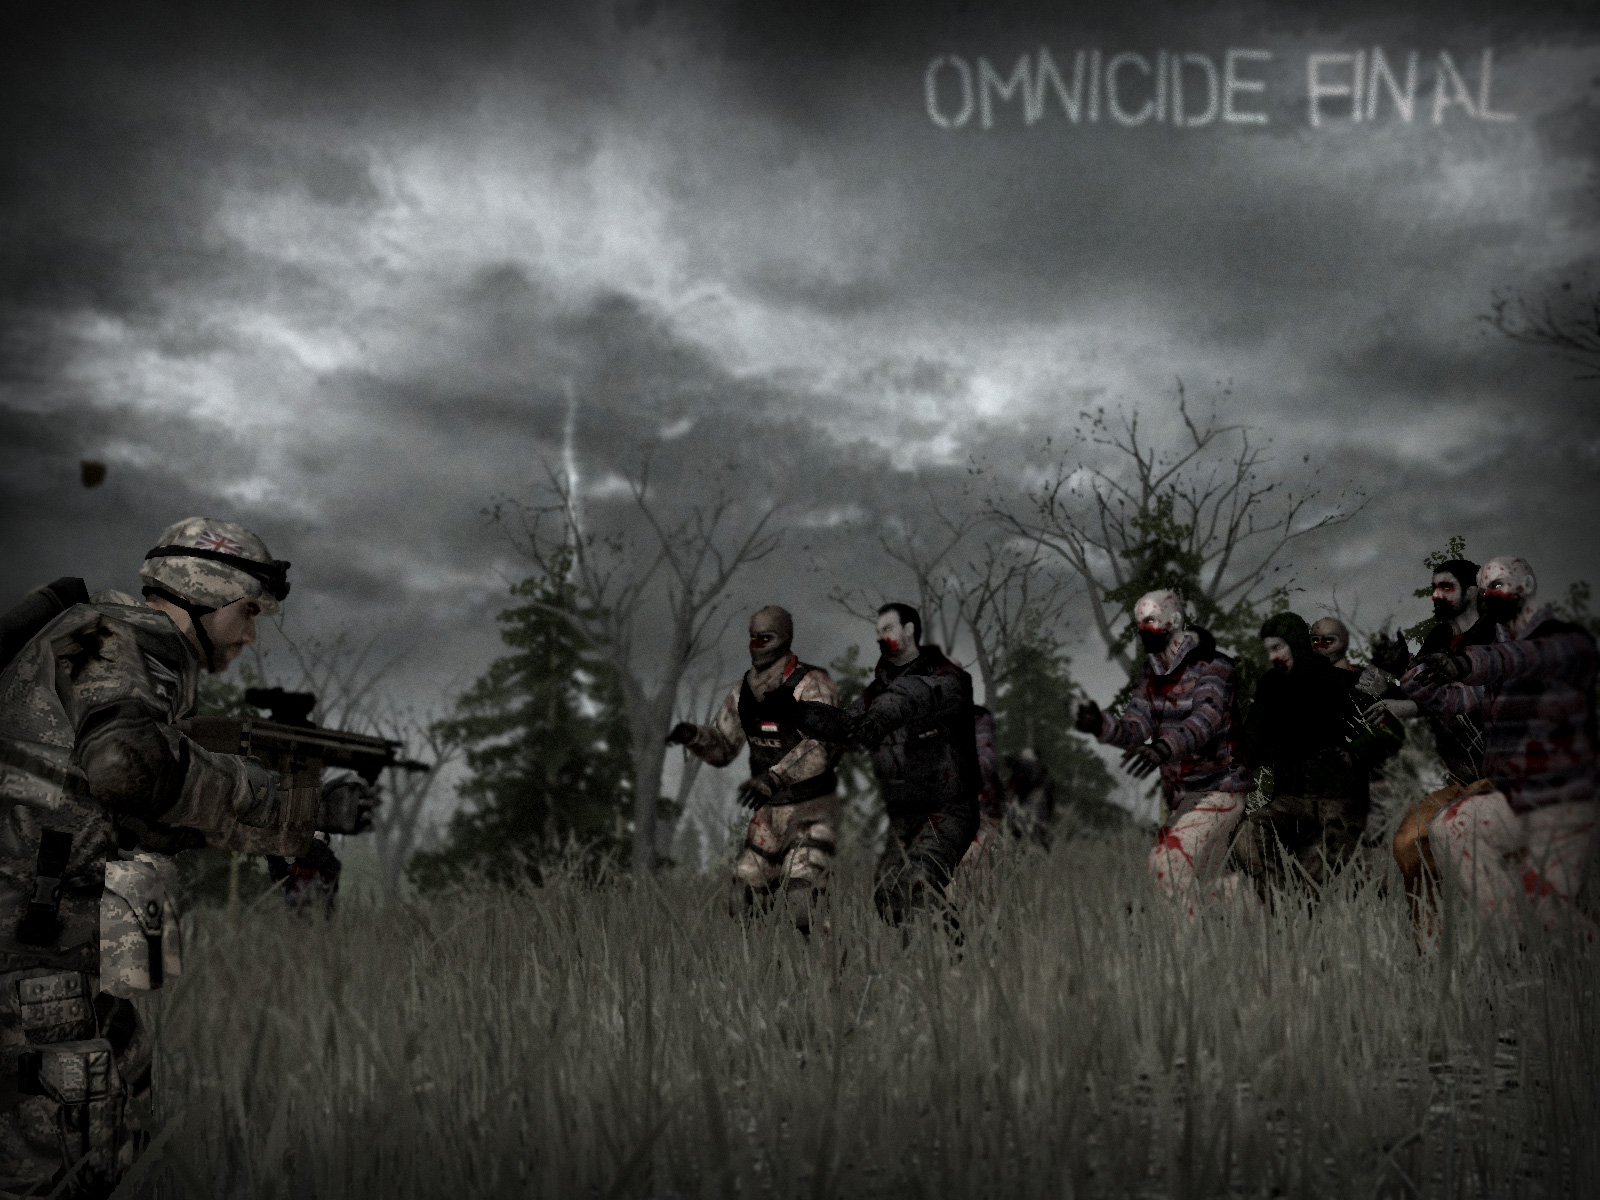 Omnicide Final Wallpaper